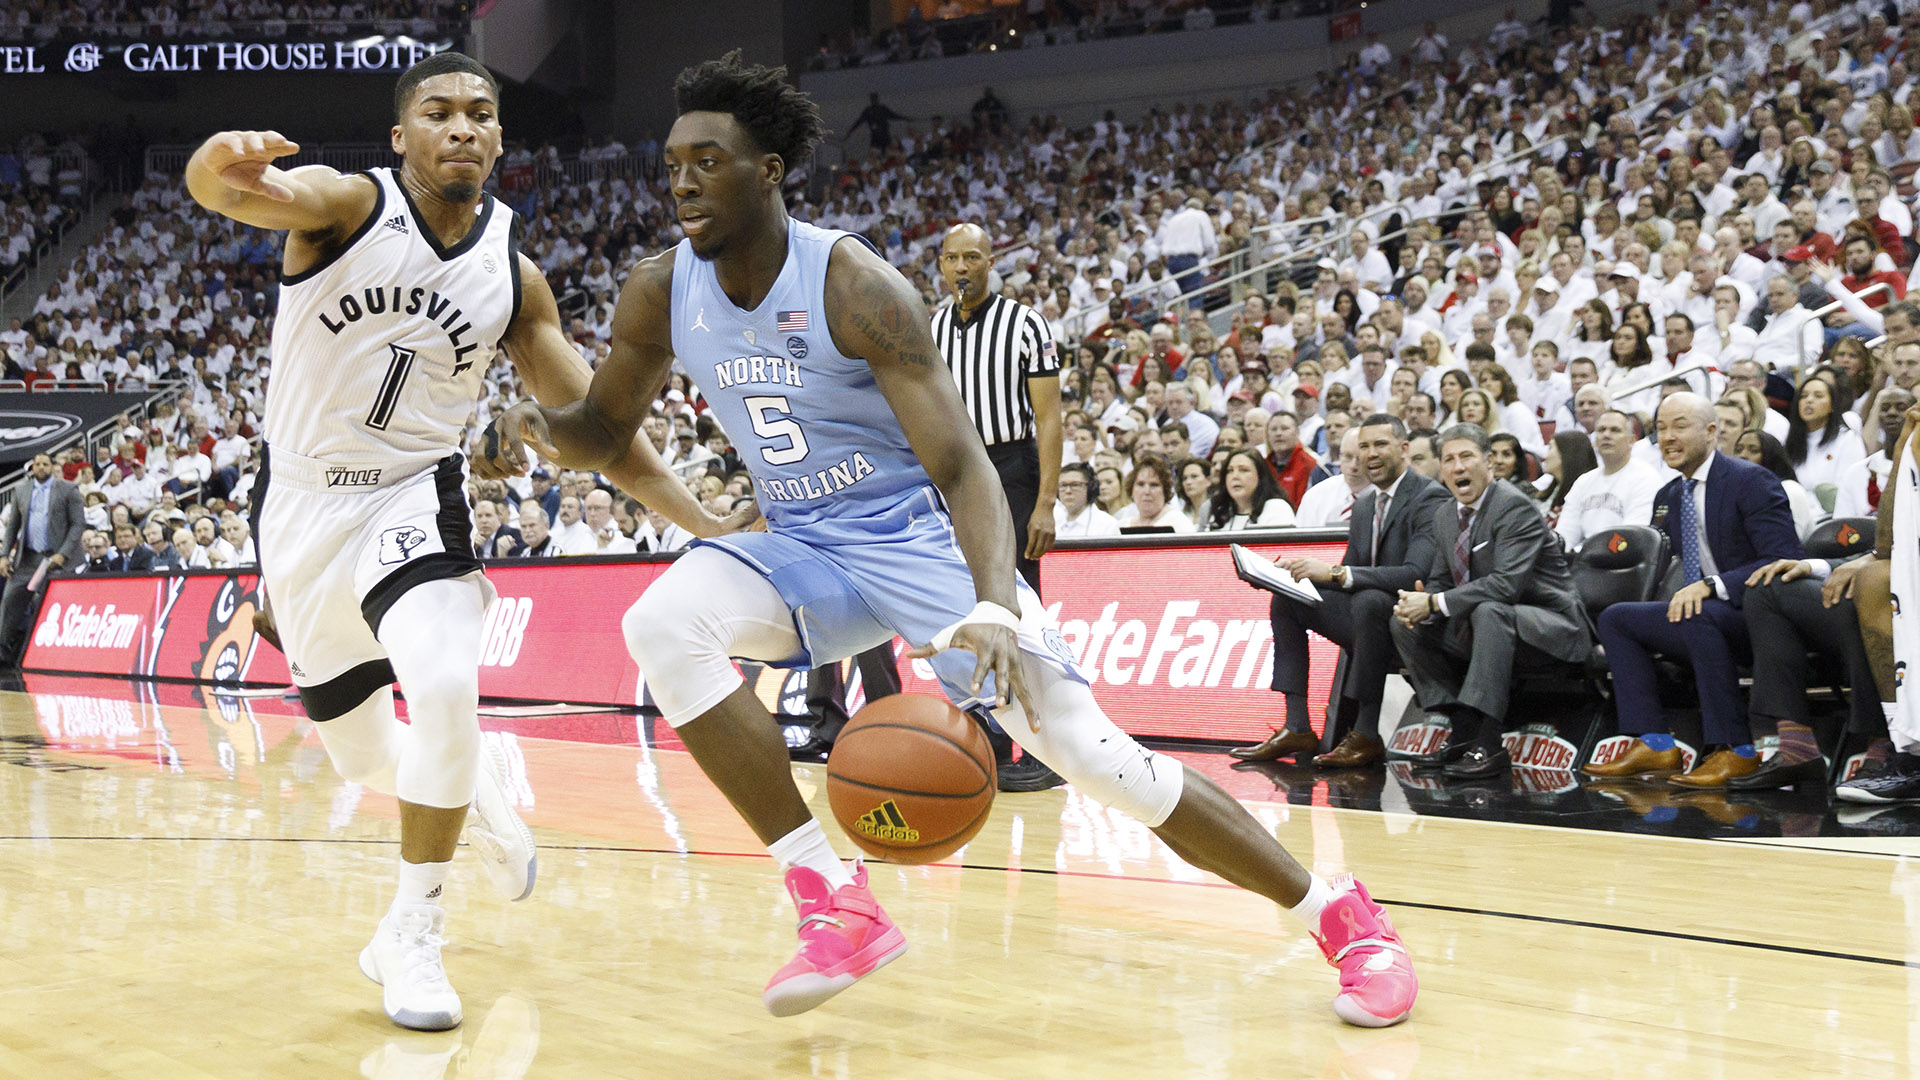 A Little improvement means a lot to Tar Heels